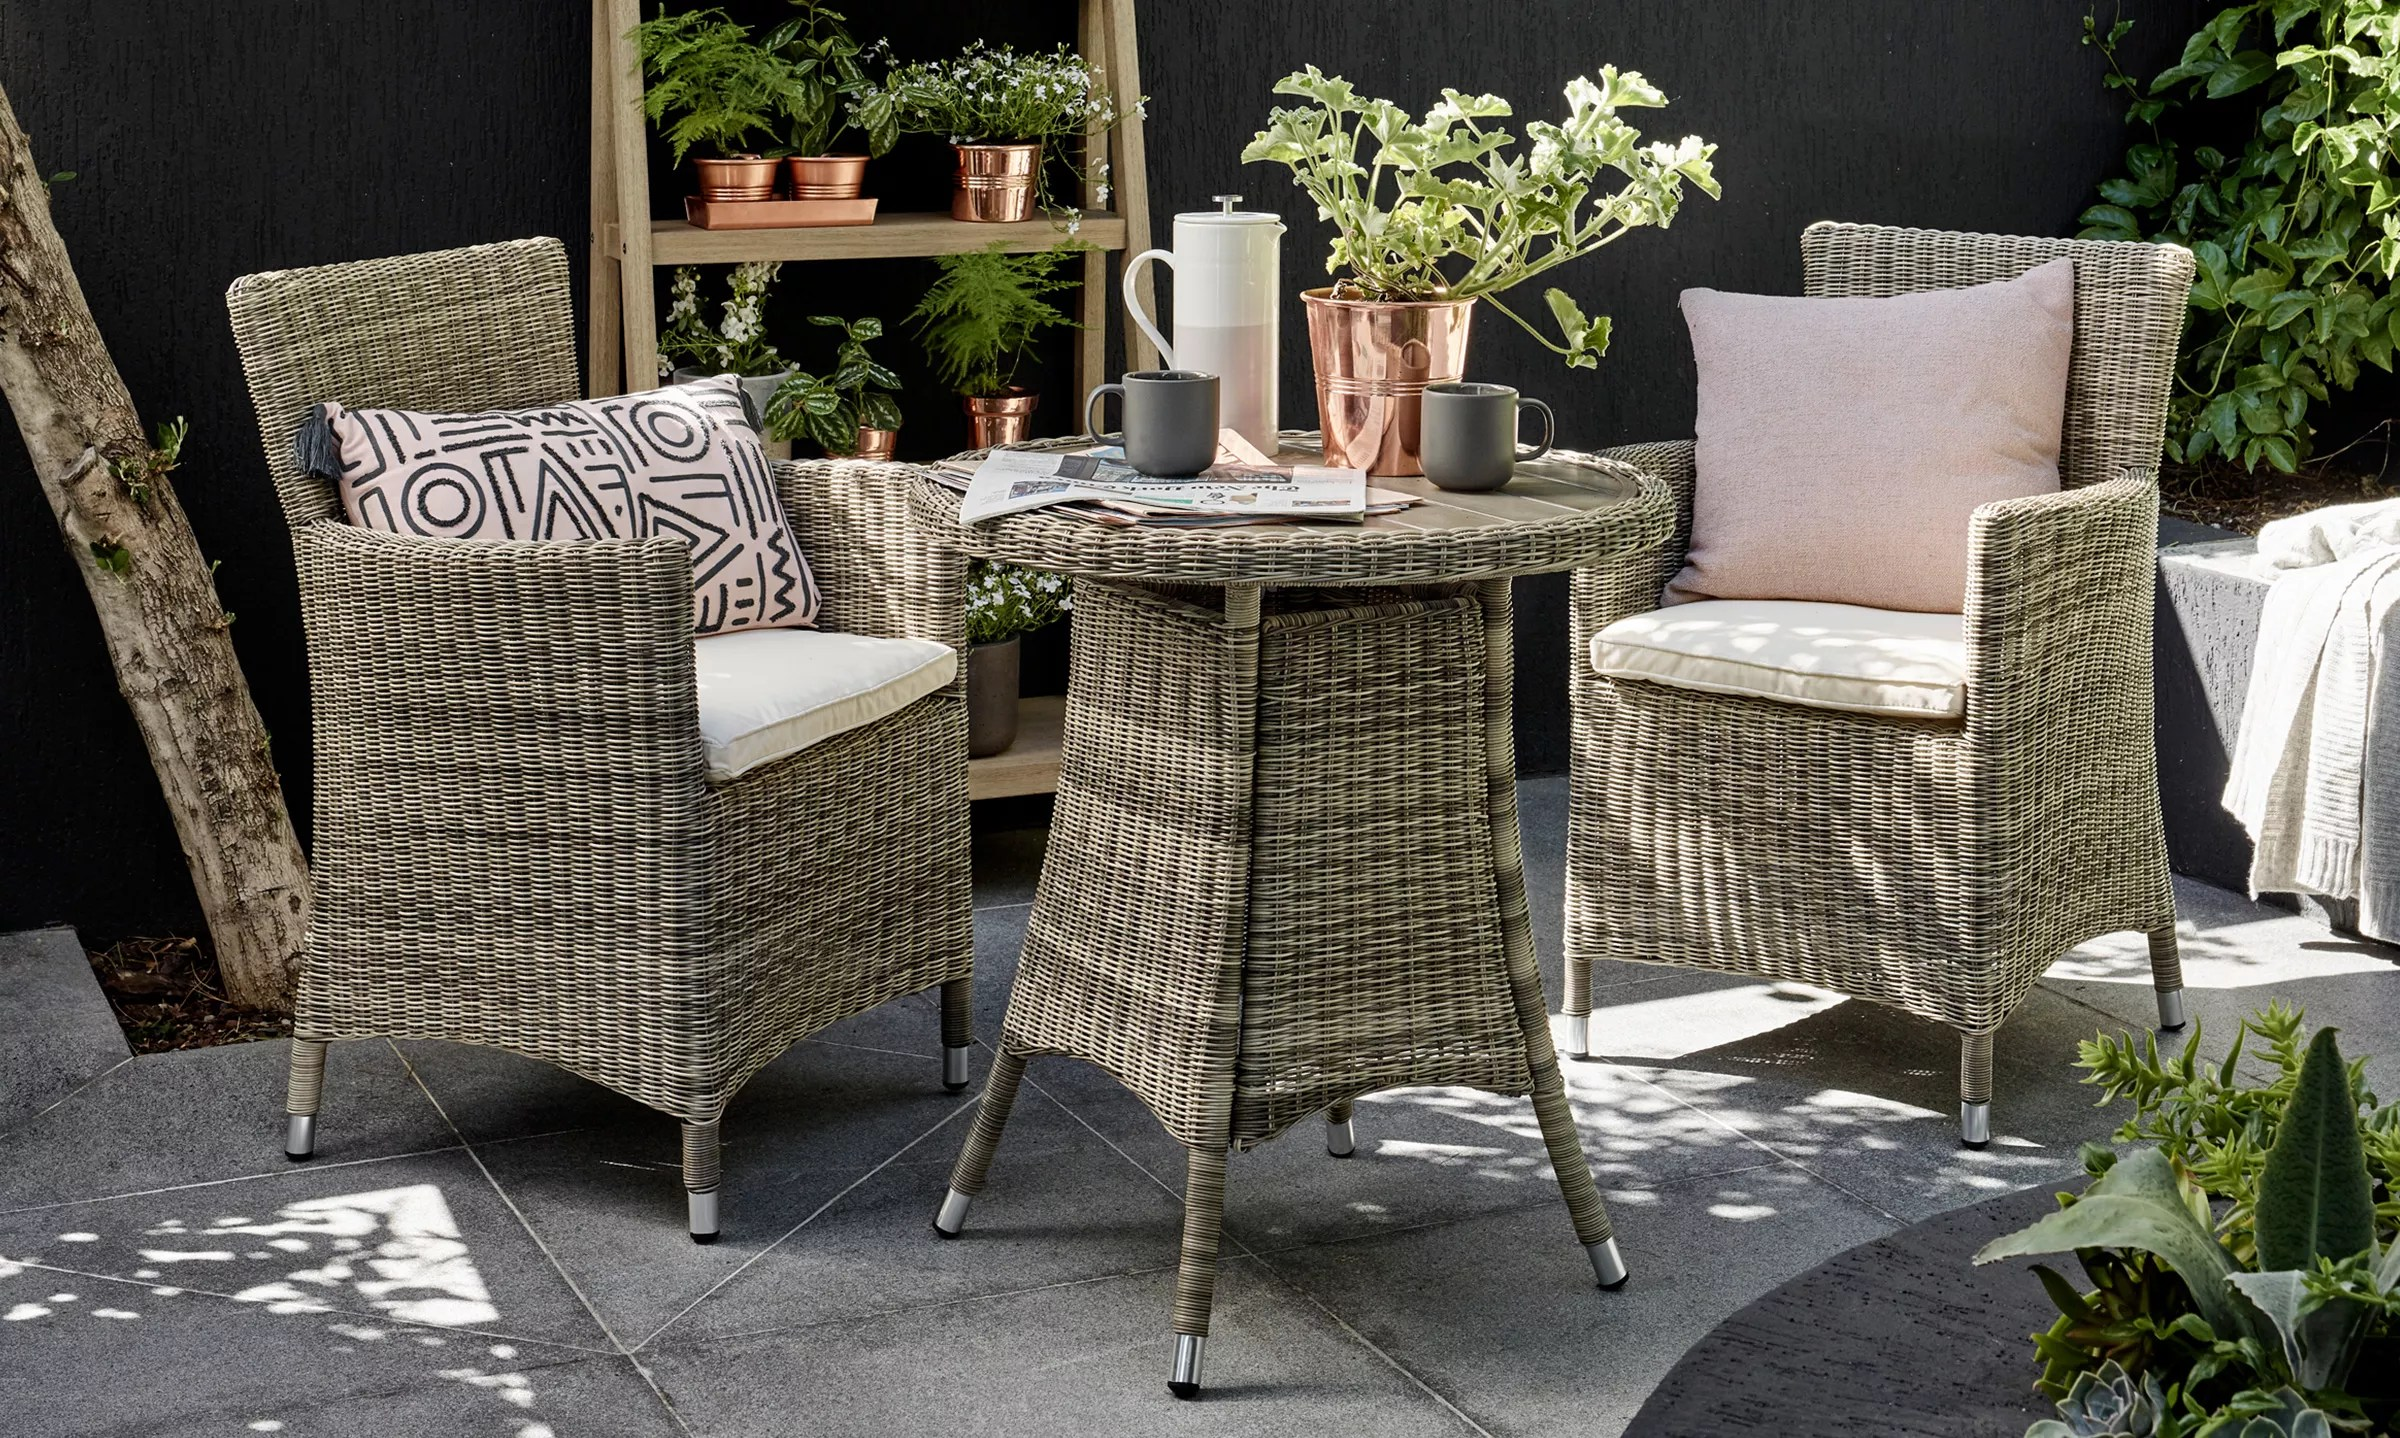 Owen 5 Piece Rattan Sofa Set With Cushions Garden Furniture Garden Tables Chairs Rattan John Lewis